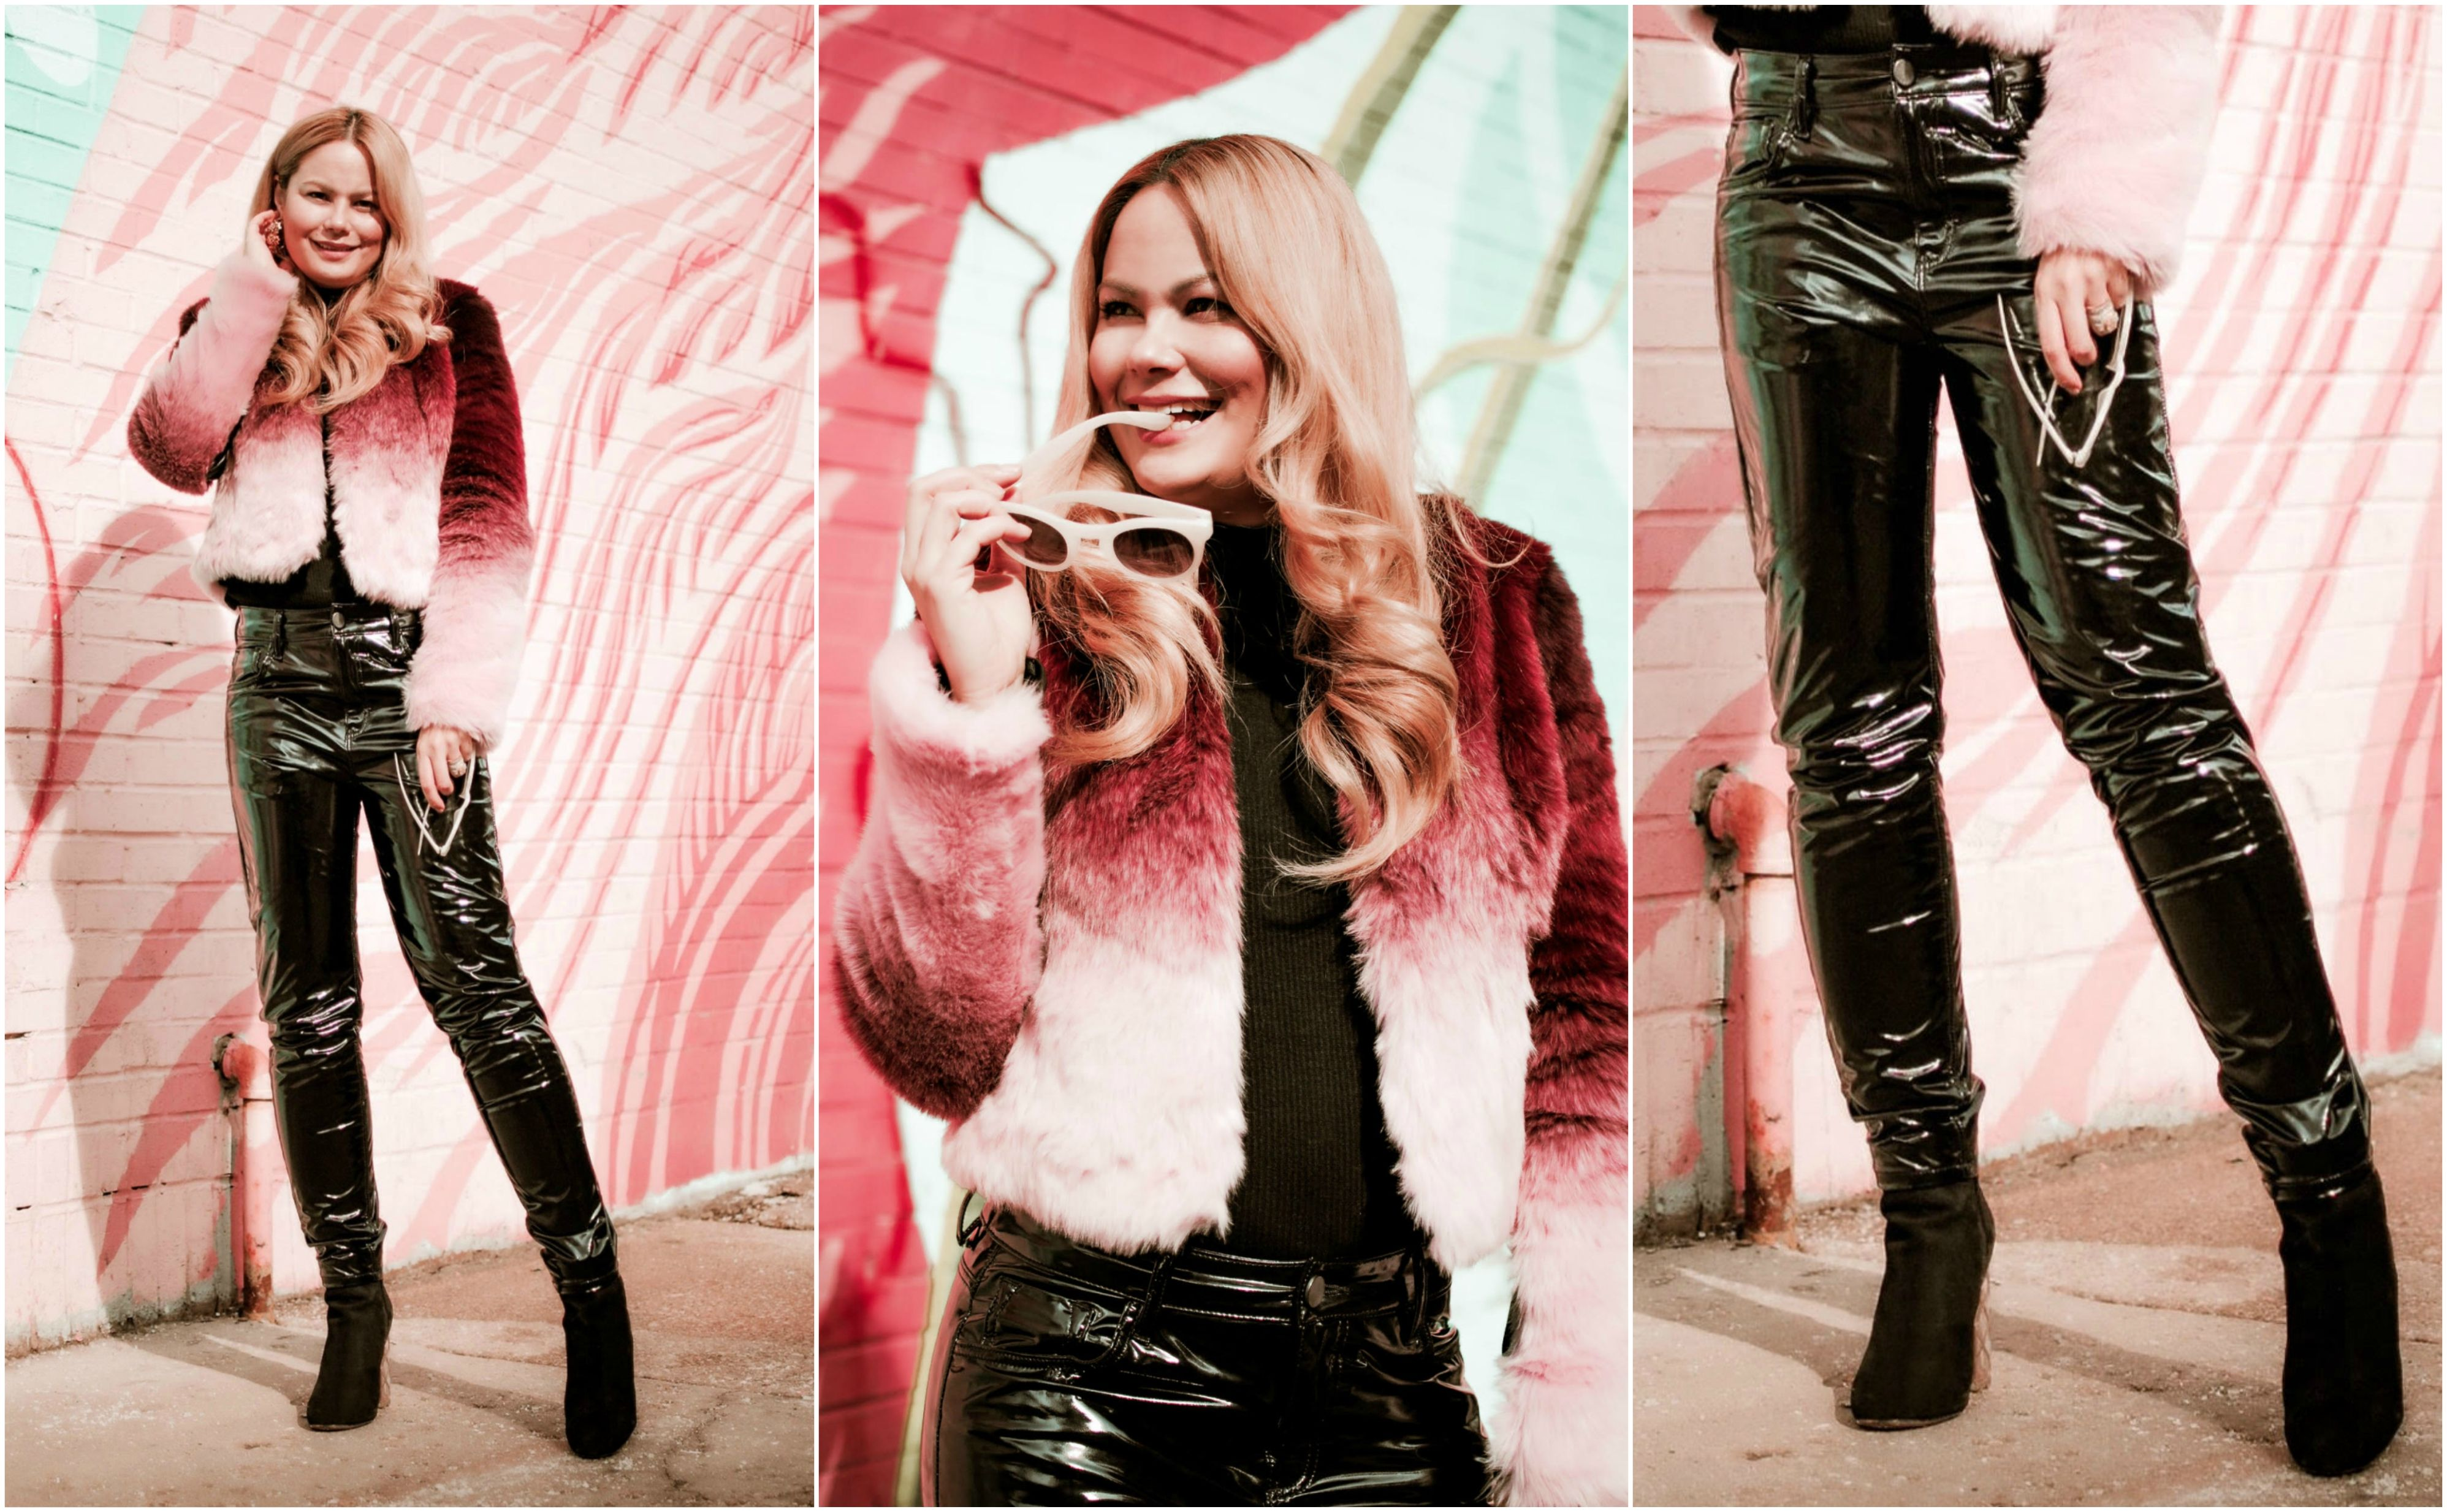 53384994848a Vanessa-Lambert-blogger-What-Would-V-Wear-wears -vinyl-pants-faux-fur-jacket-flamingo-wall-chicago